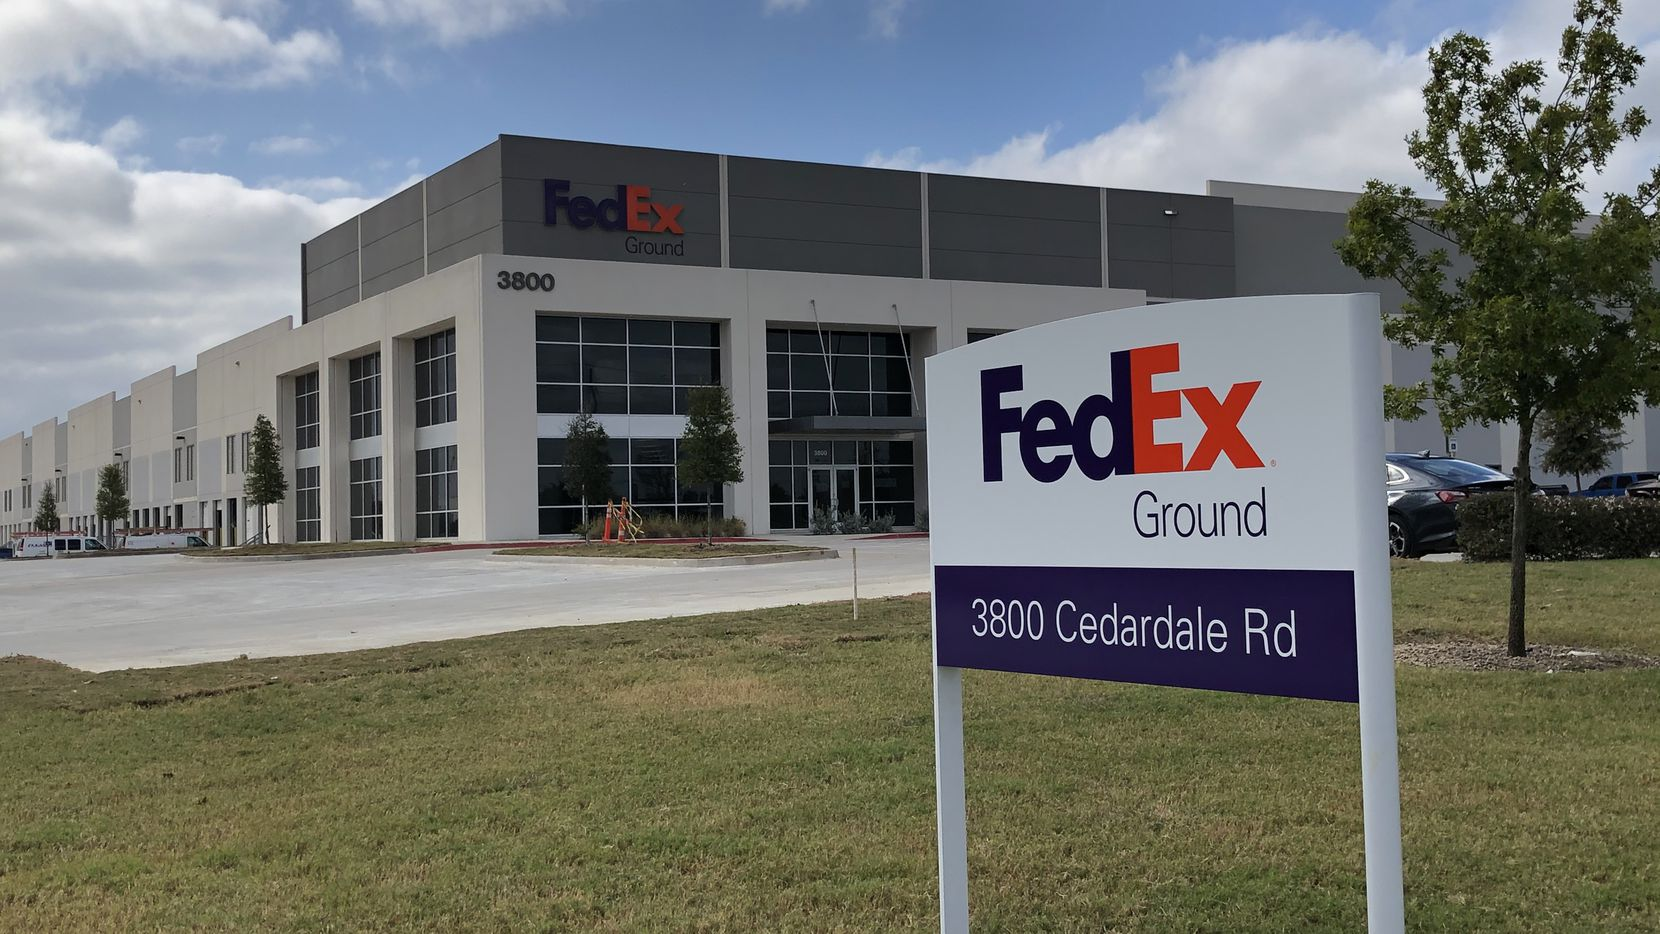 FedEx is locating its new shipping hub in the Cedardale Distribution Center in southern Dallas.